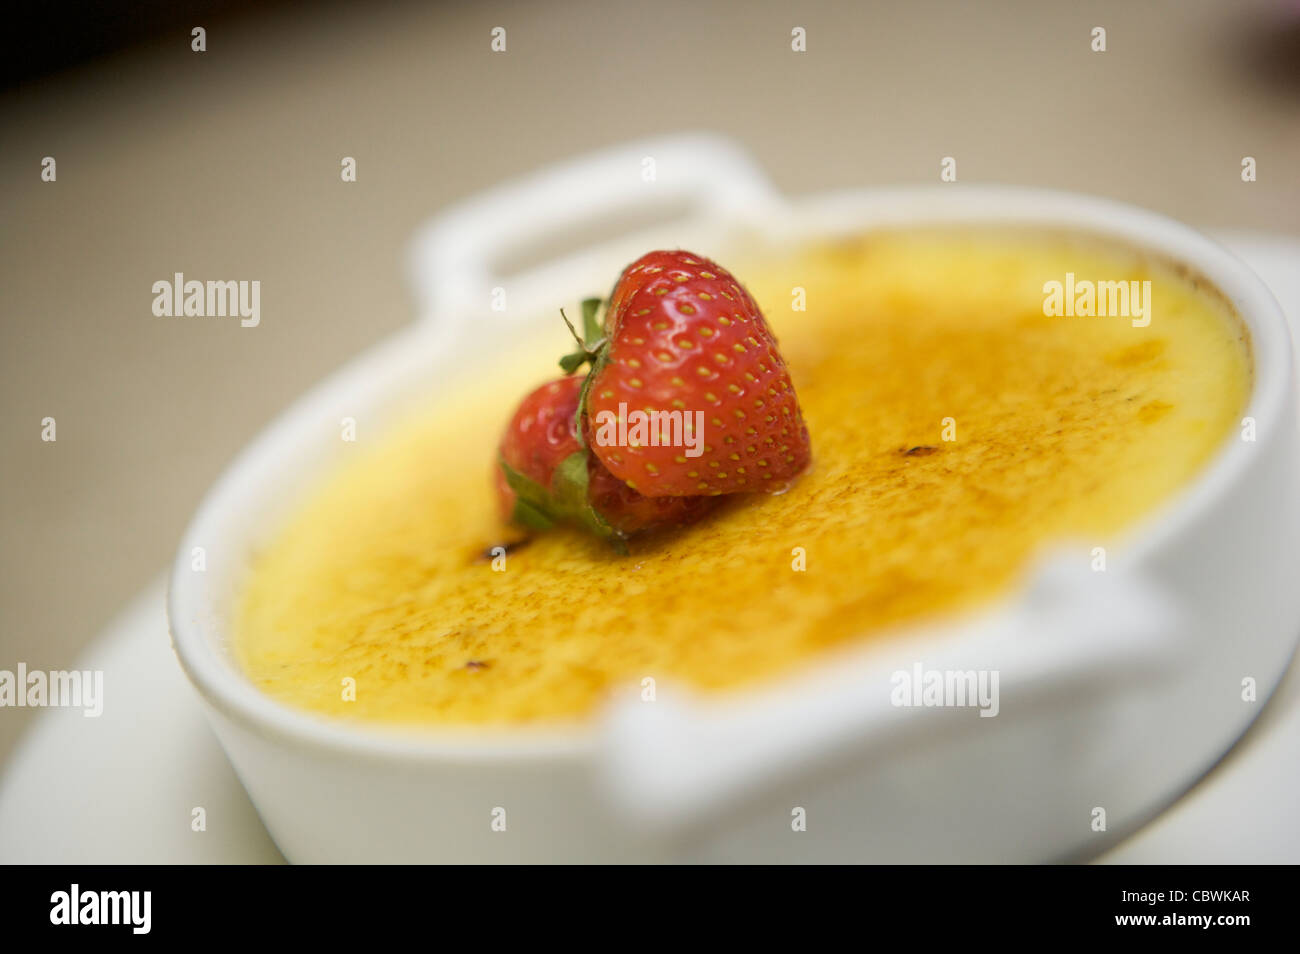 Creme Brulee pudding/Dessert served in a. white bowl - Stock Image